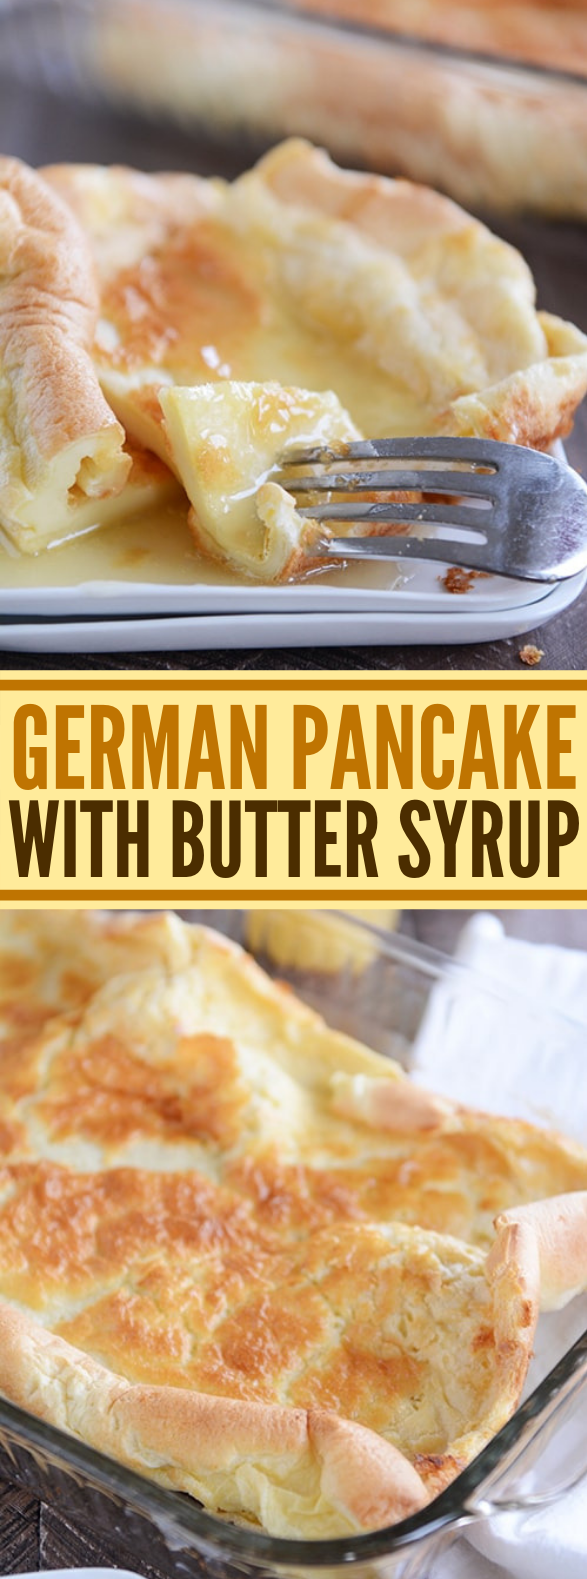 GERMAN PANCAKE {WHOLE GRAIN OPTION} WITH BUTTER SYRUP #breakfast #snacks